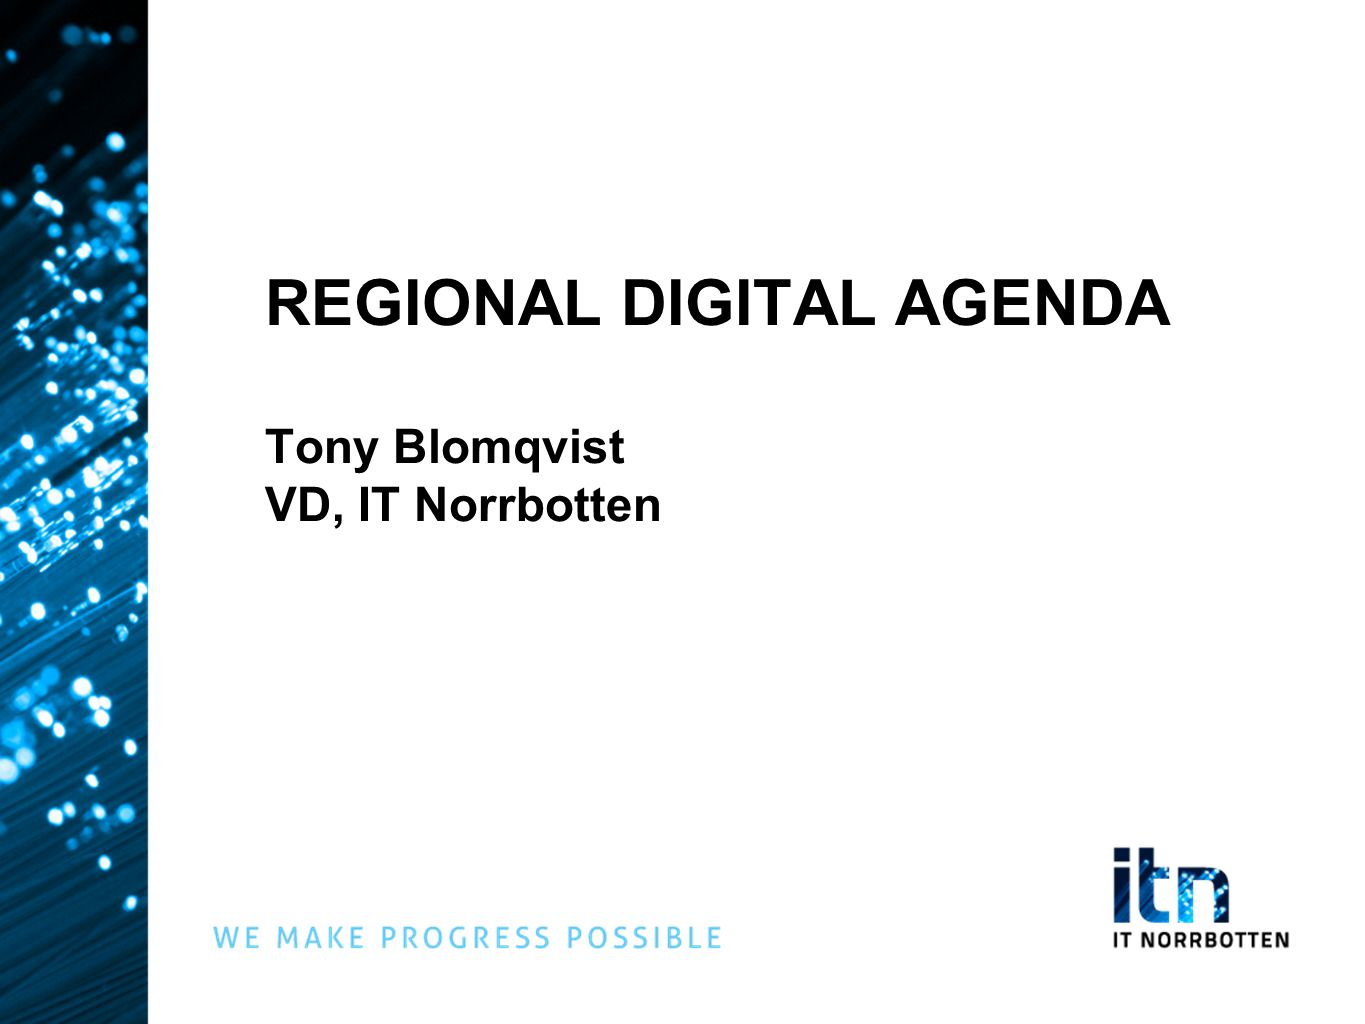 REGIONAL DIGITAL AGENDA Tony Blomqvist VD, IT Norrbotten